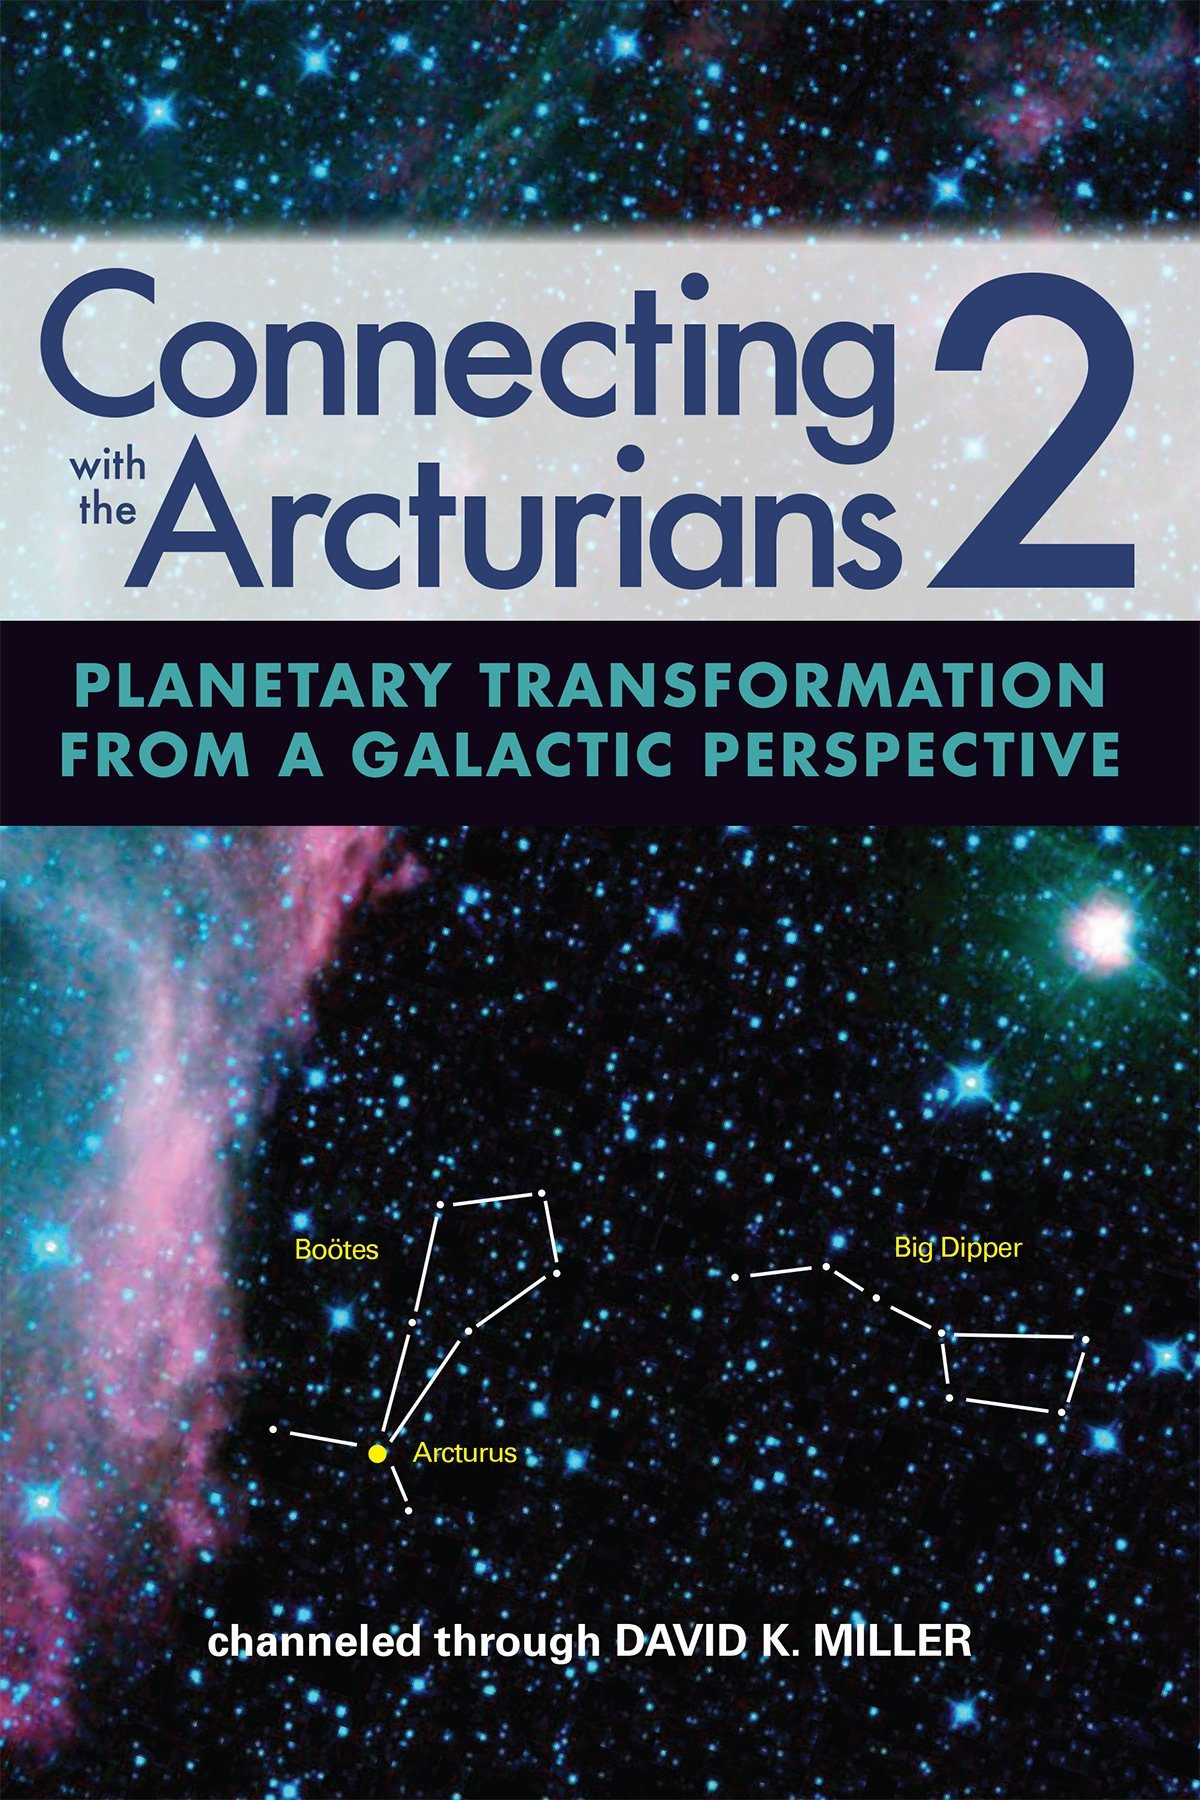 Connecting with the Arcturians 2 pdf